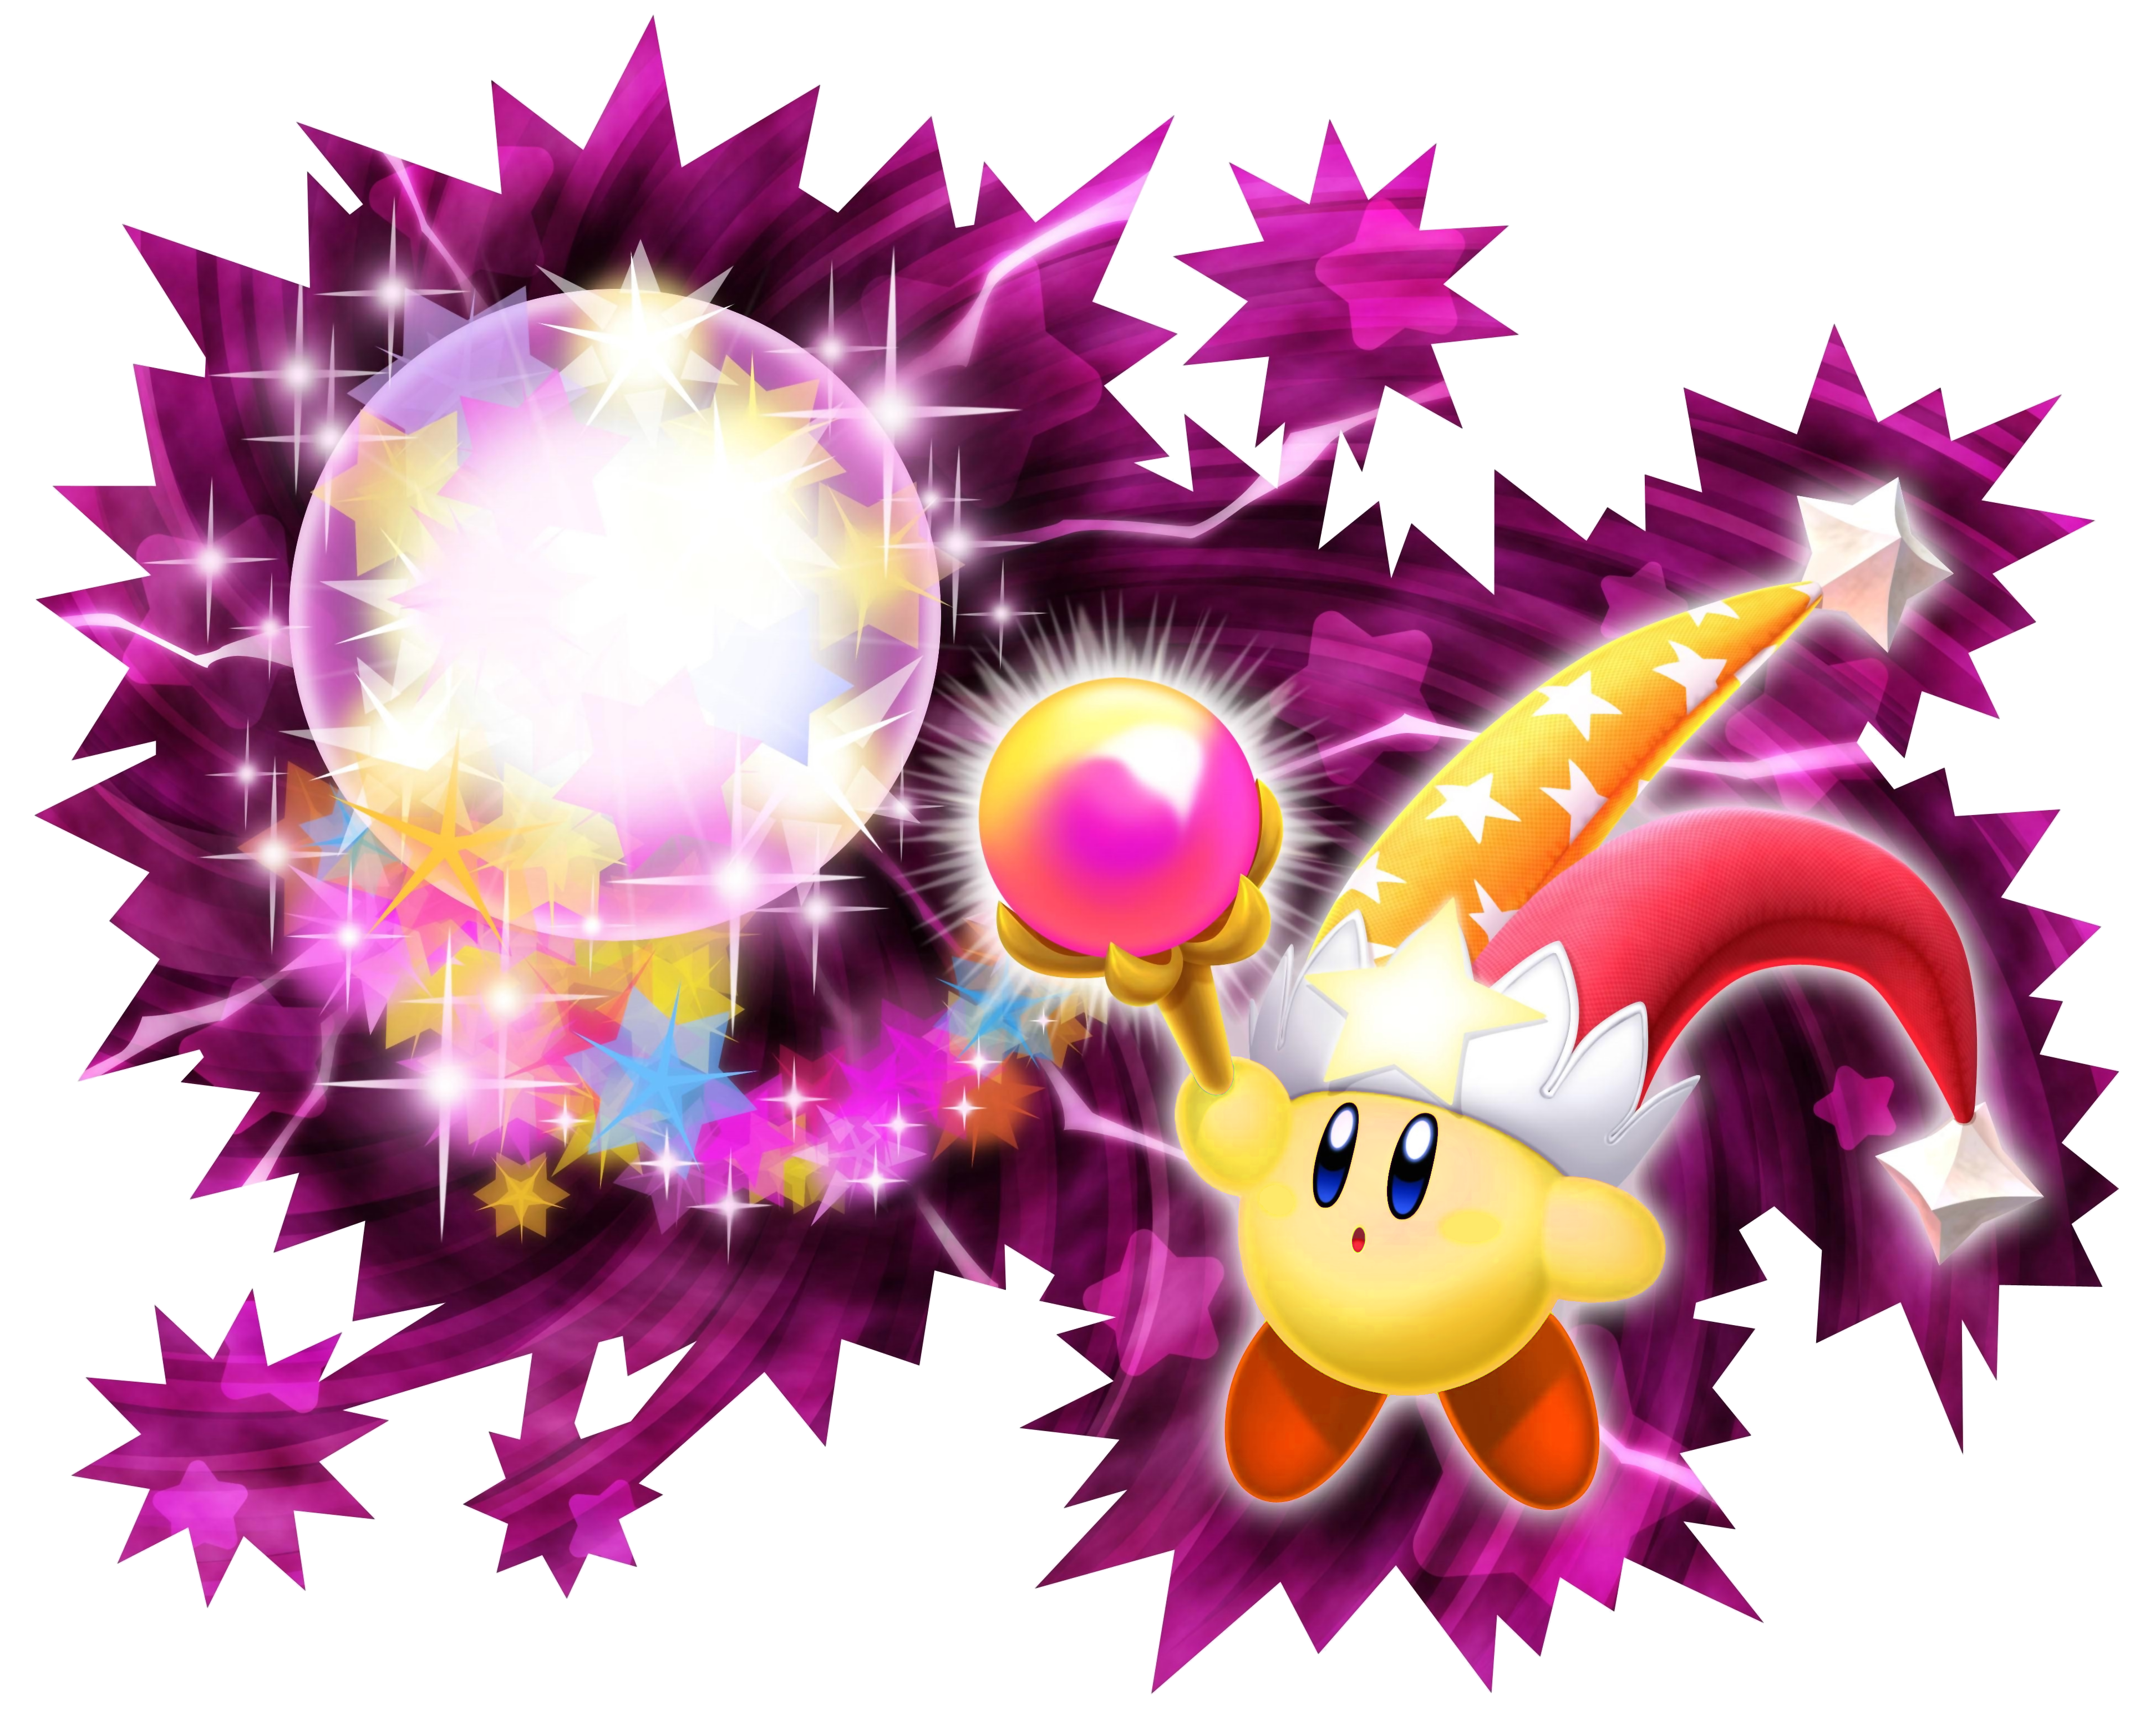 Image flare kirby kdl. Spaceship clipart beam